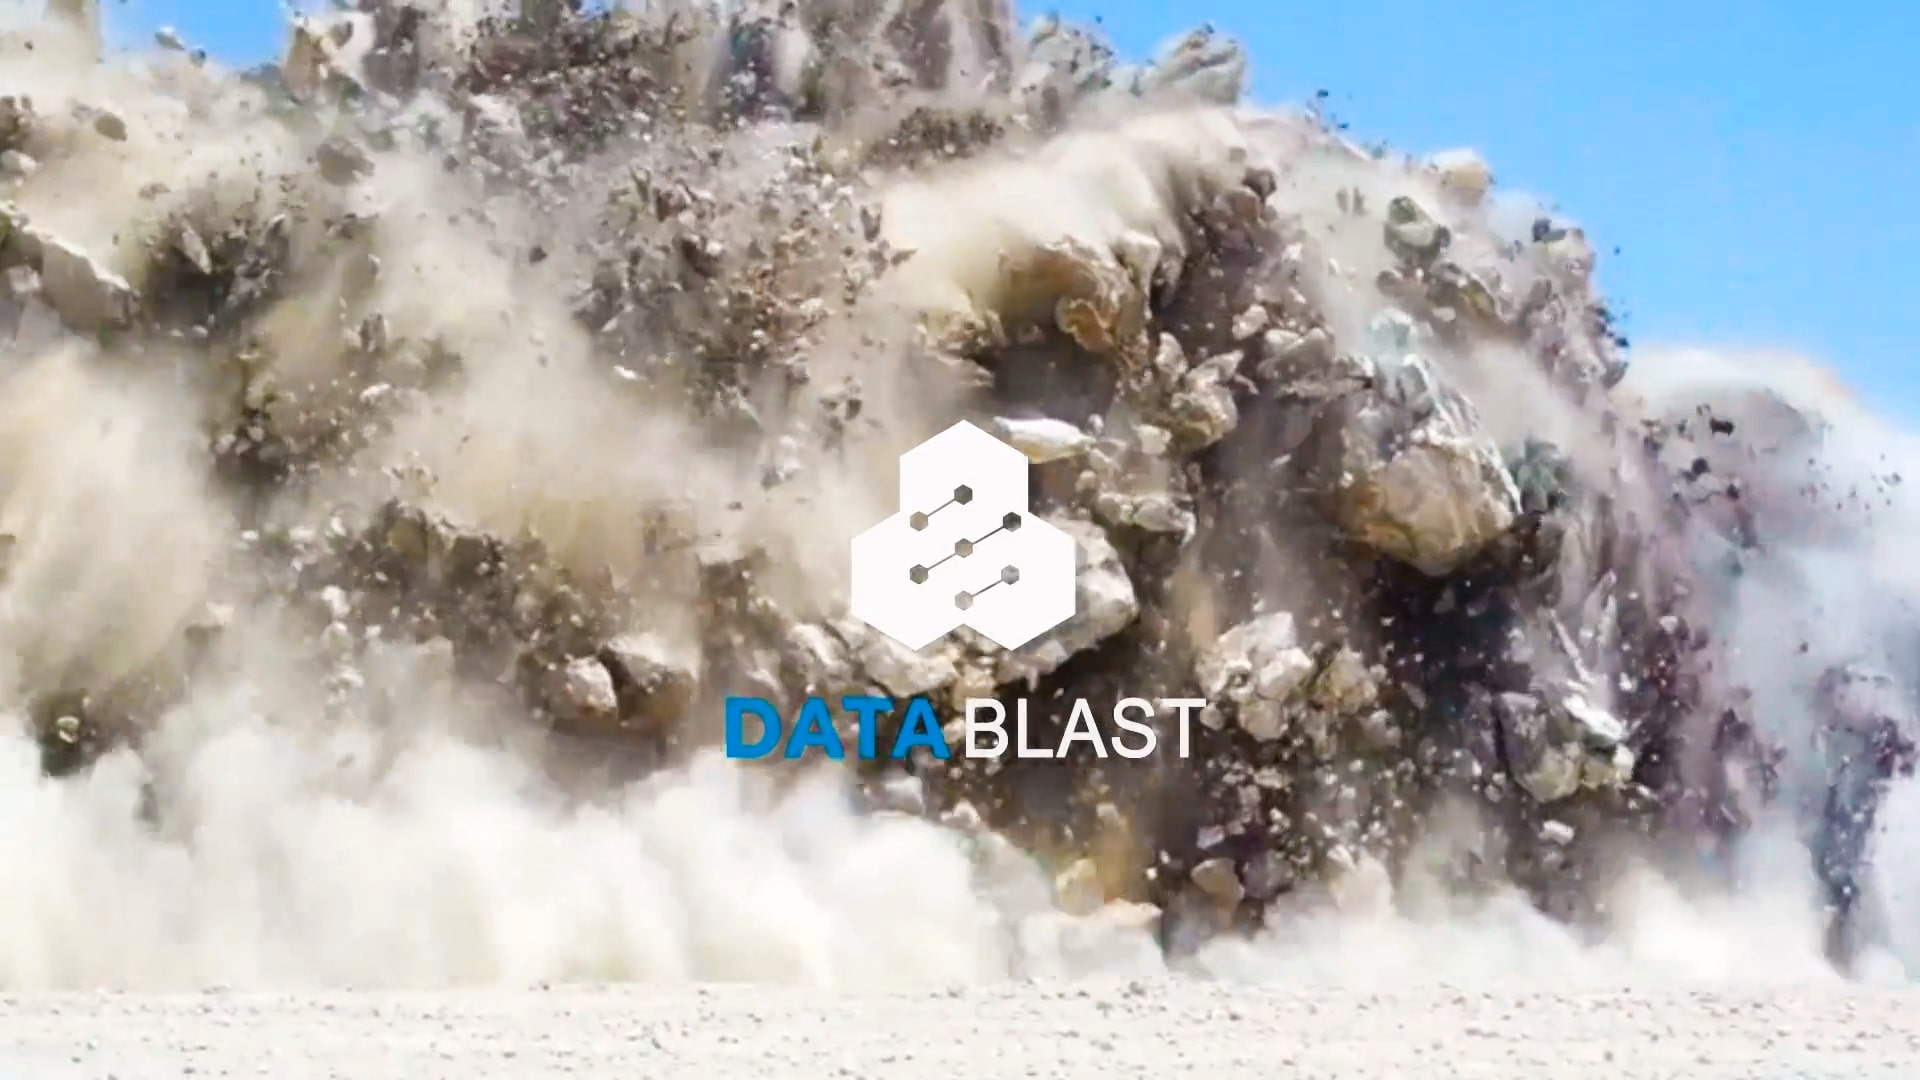 screenshot of the title screen of DataBlast overview video showing a blast in the background and the DataBlast logo in the front.